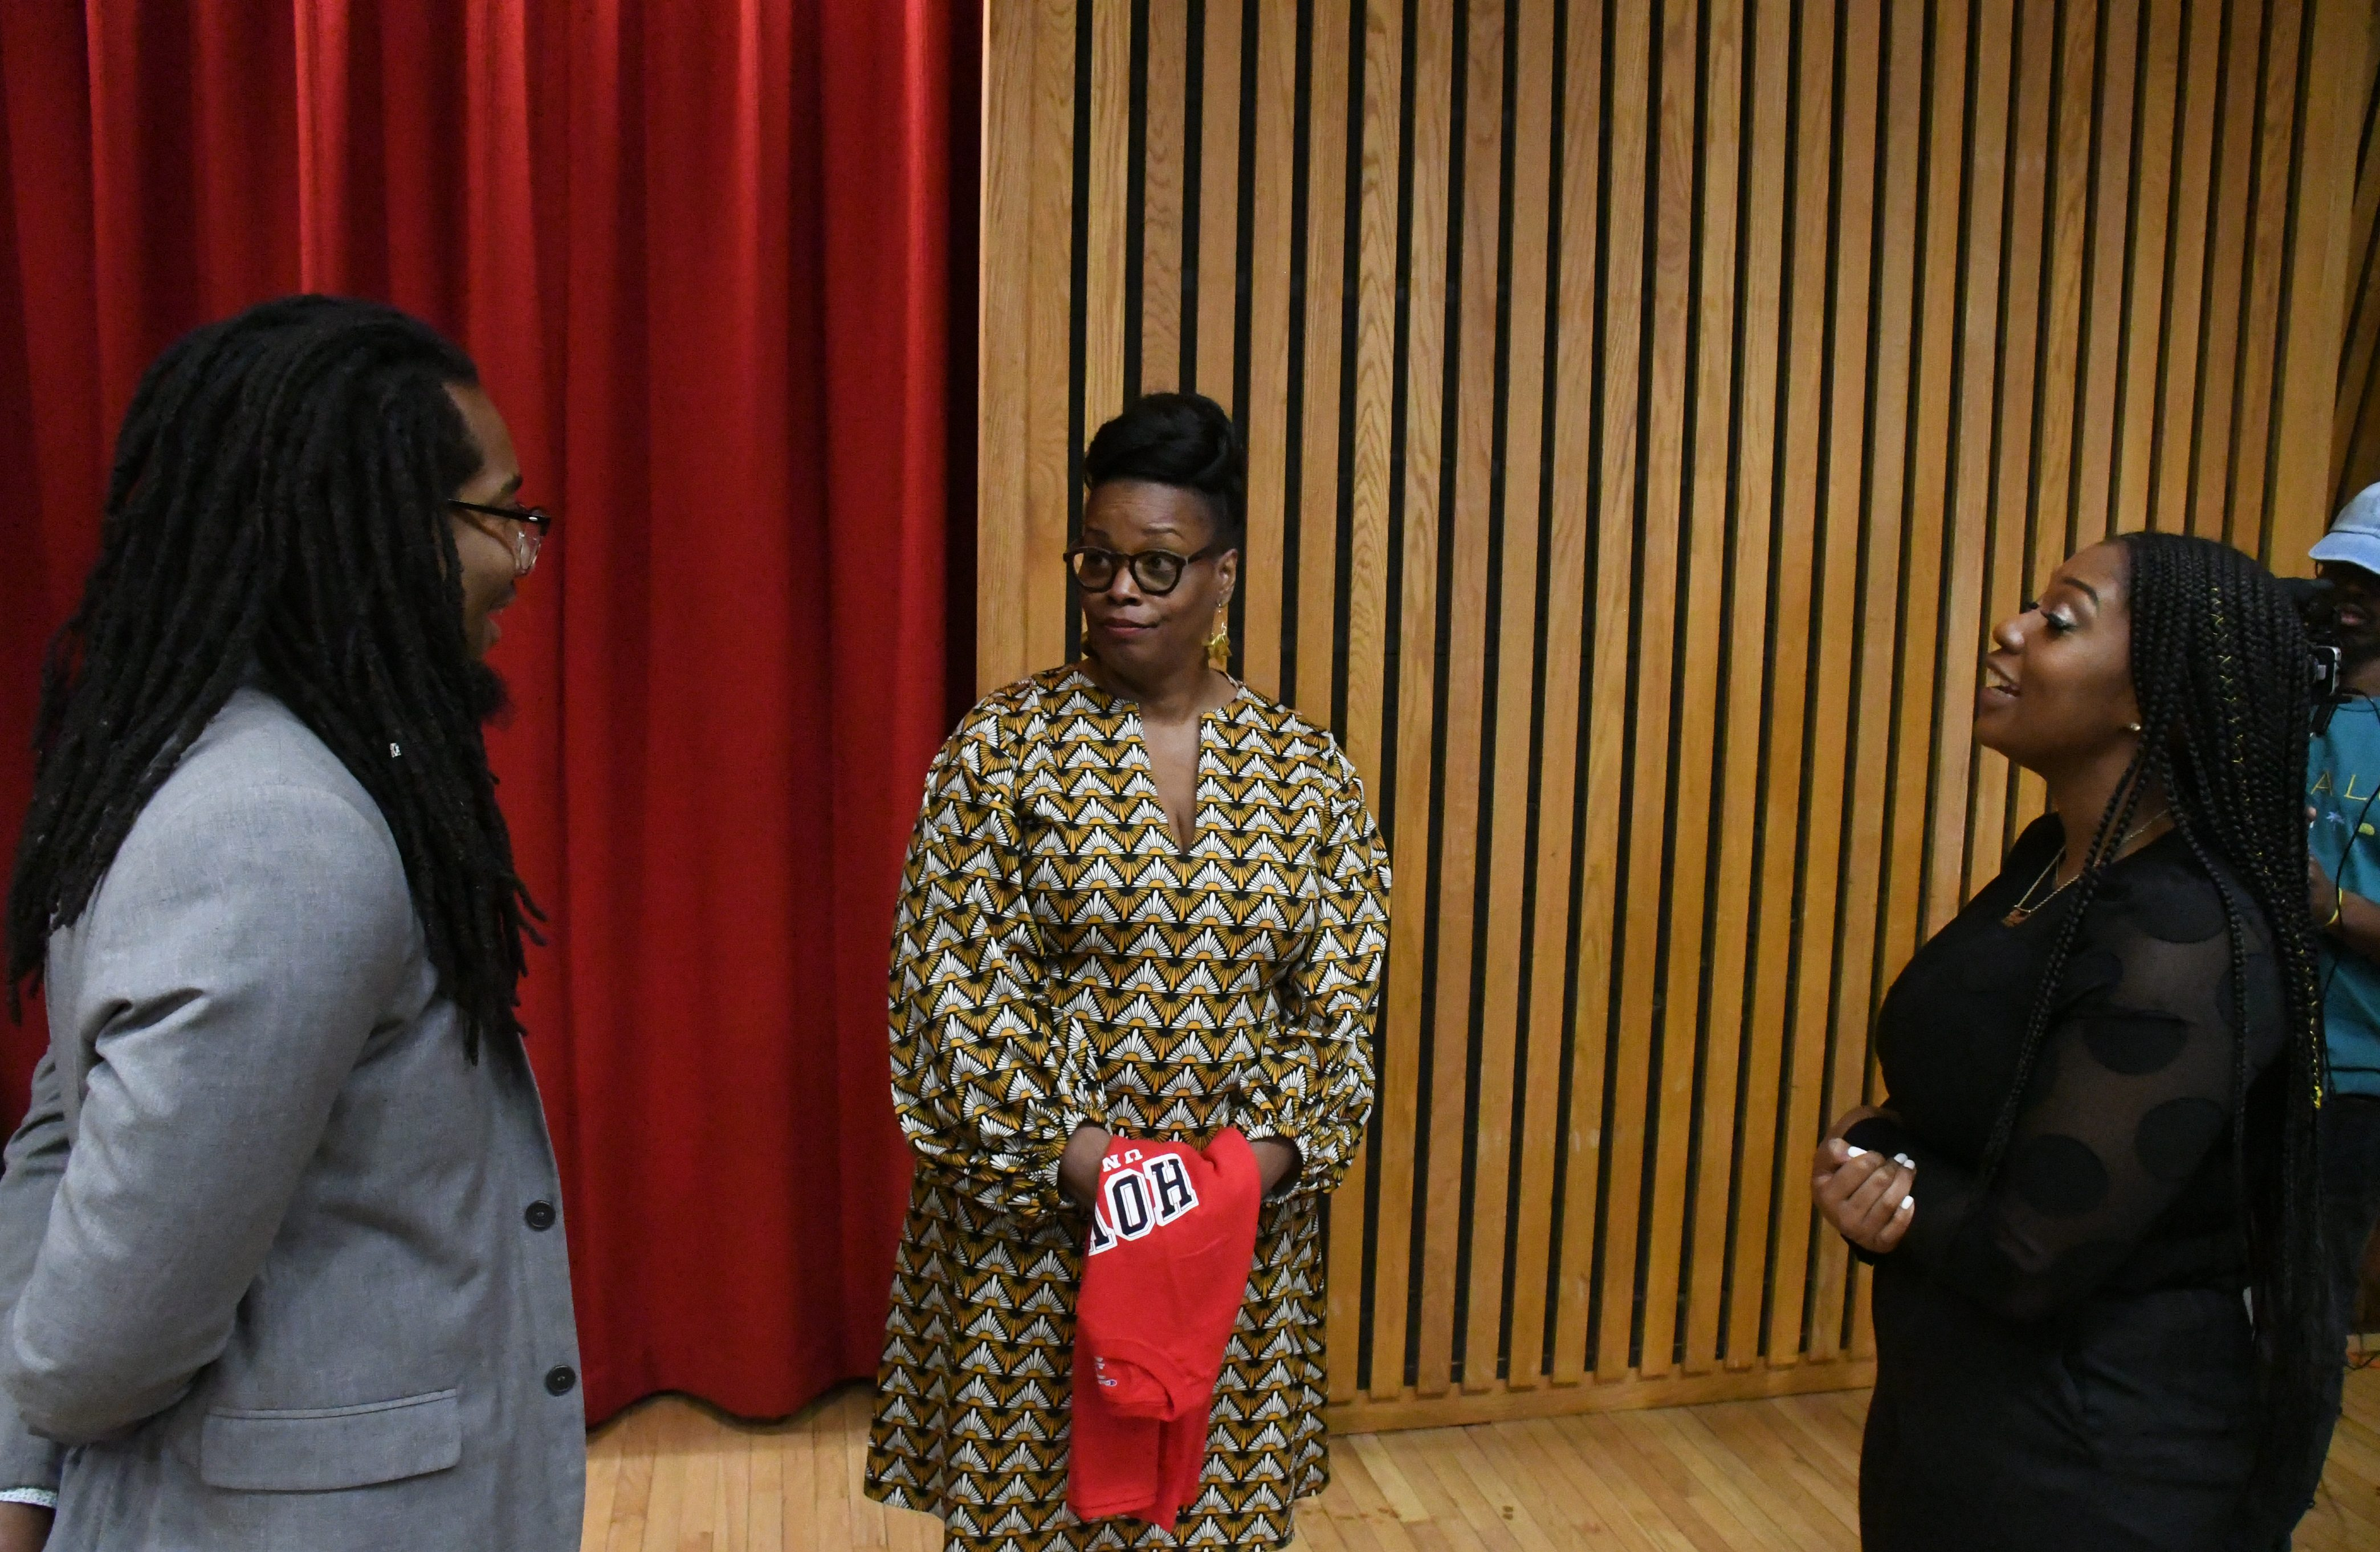 Diane Reeves shares her success story with jazz students Peter Roberts and Jillian Willis during a master class at Howard University on April 17, 2018. (Roy Lewis/The Washington Informer)